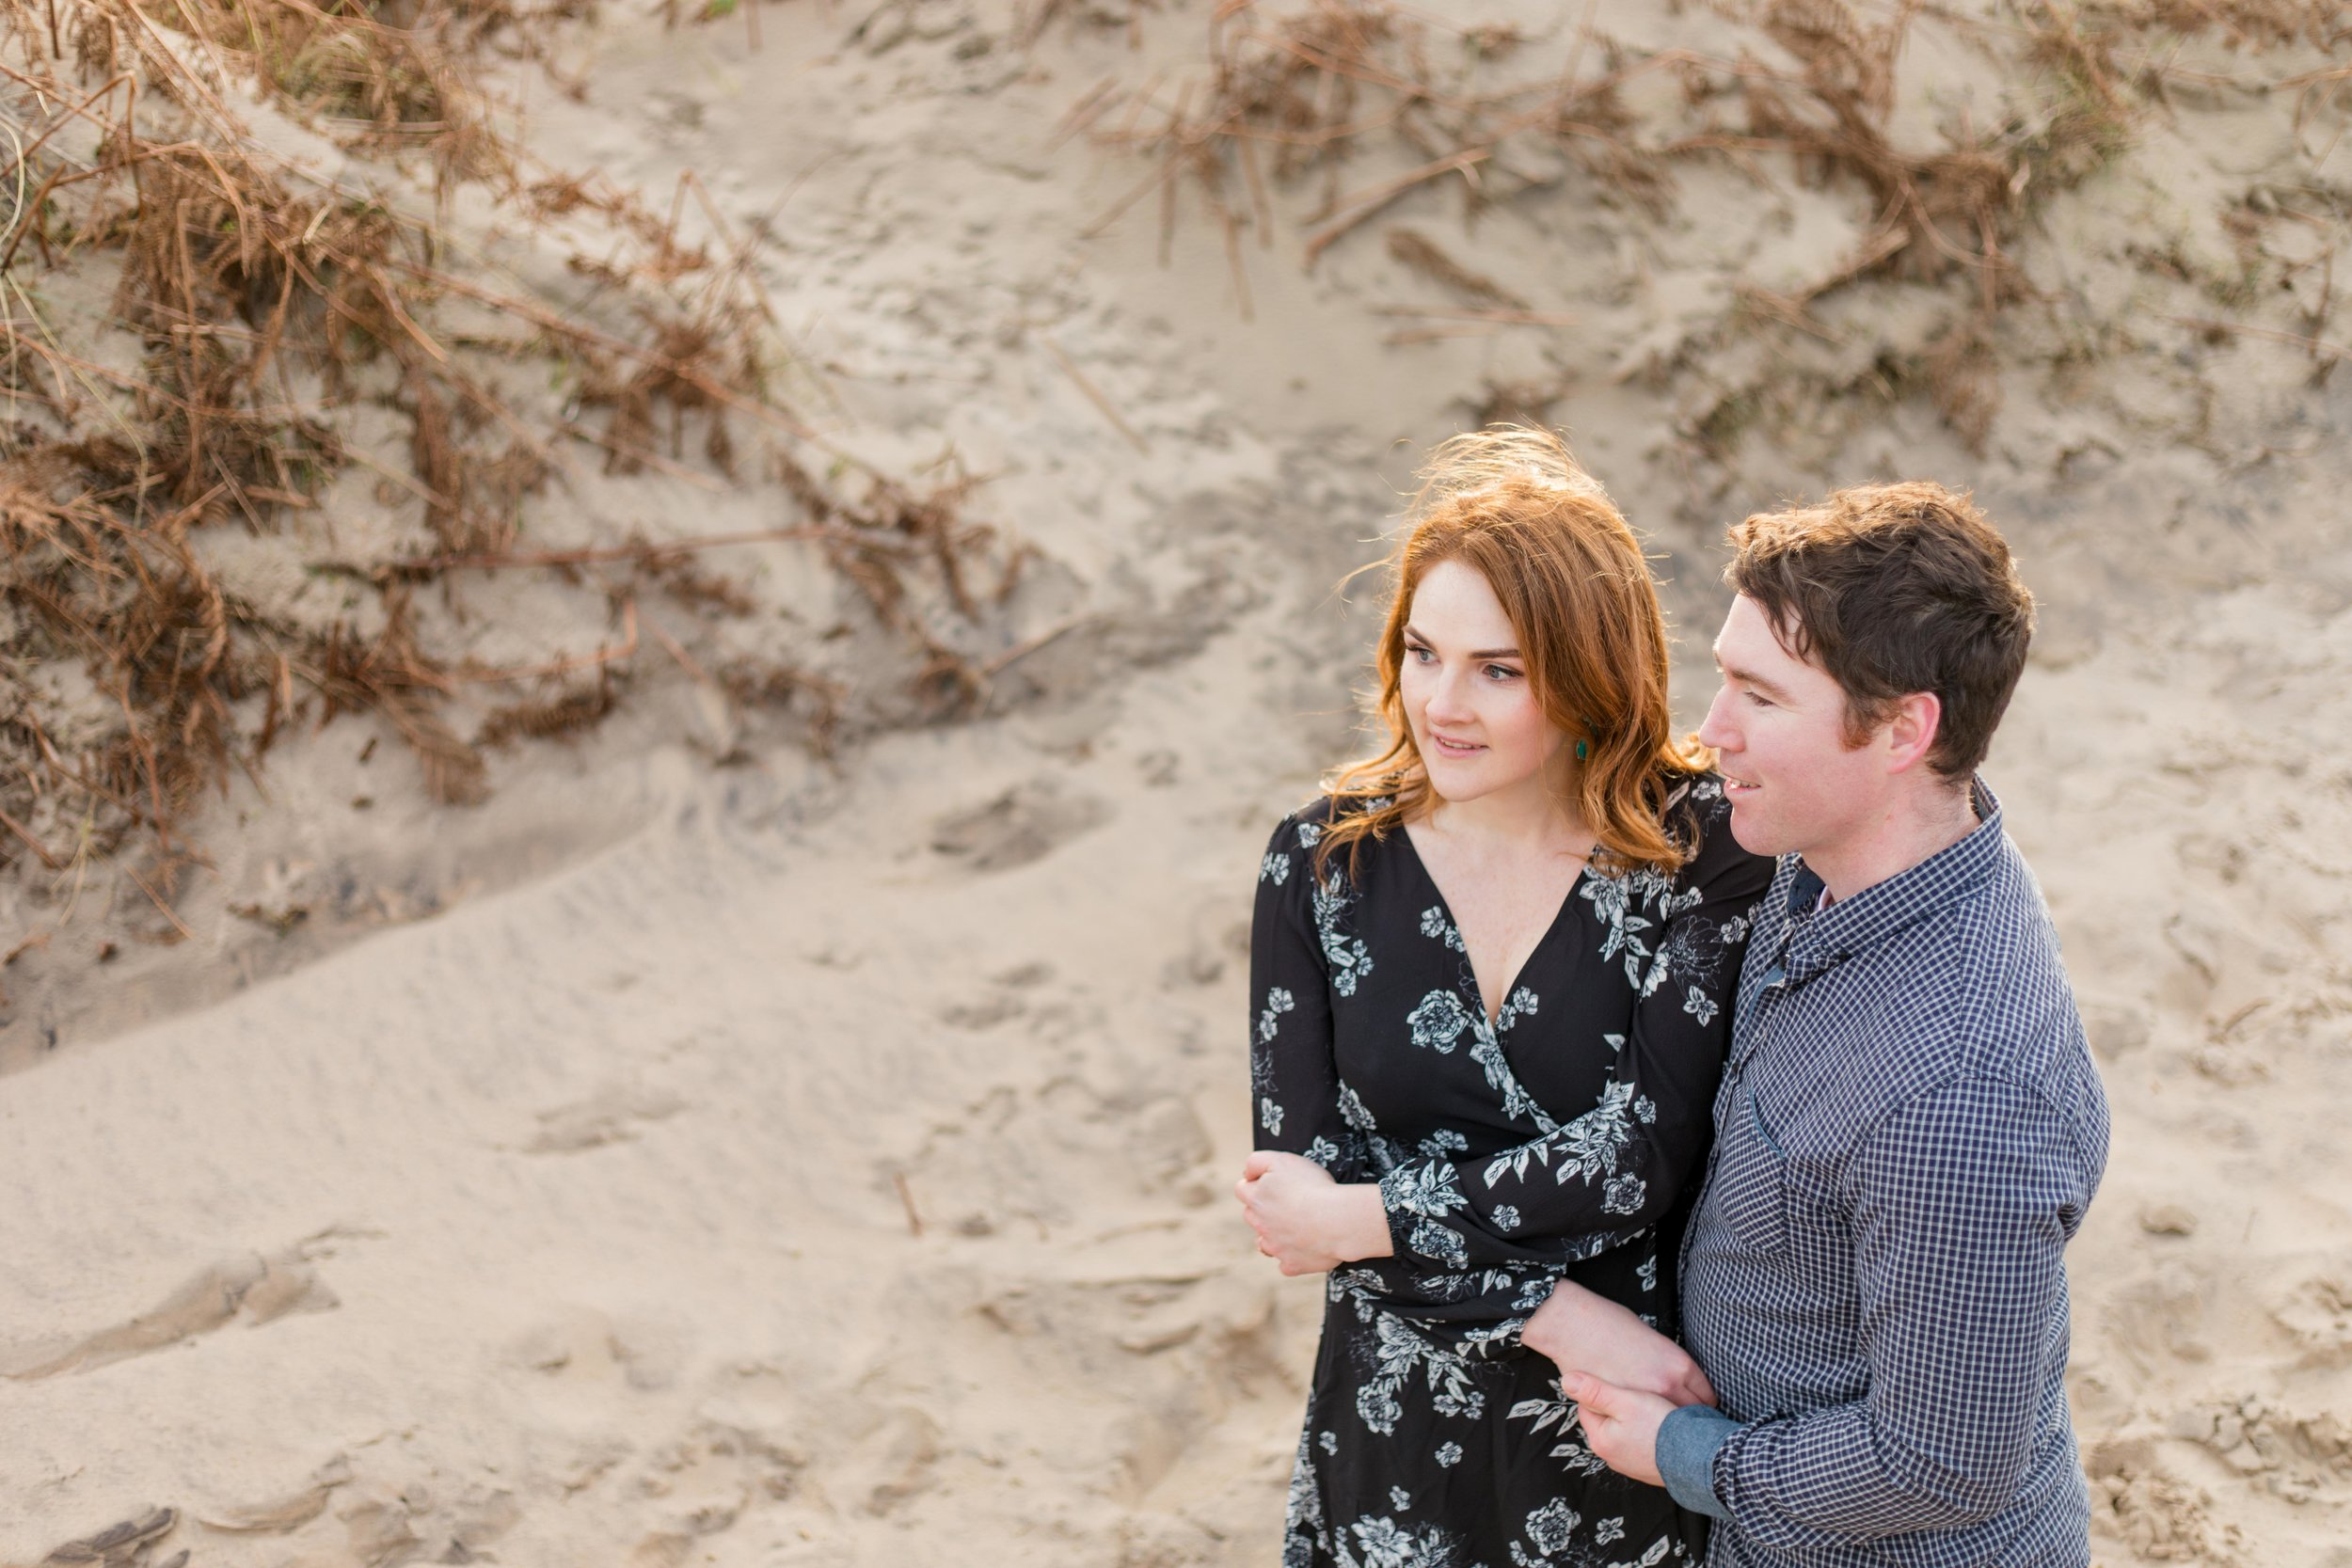 a red headed woman holding hands with her future husband posing for an engagement photoshoot with shoulder length hair wearing a knee length black dress with white flowers on a sandy beach in ireland